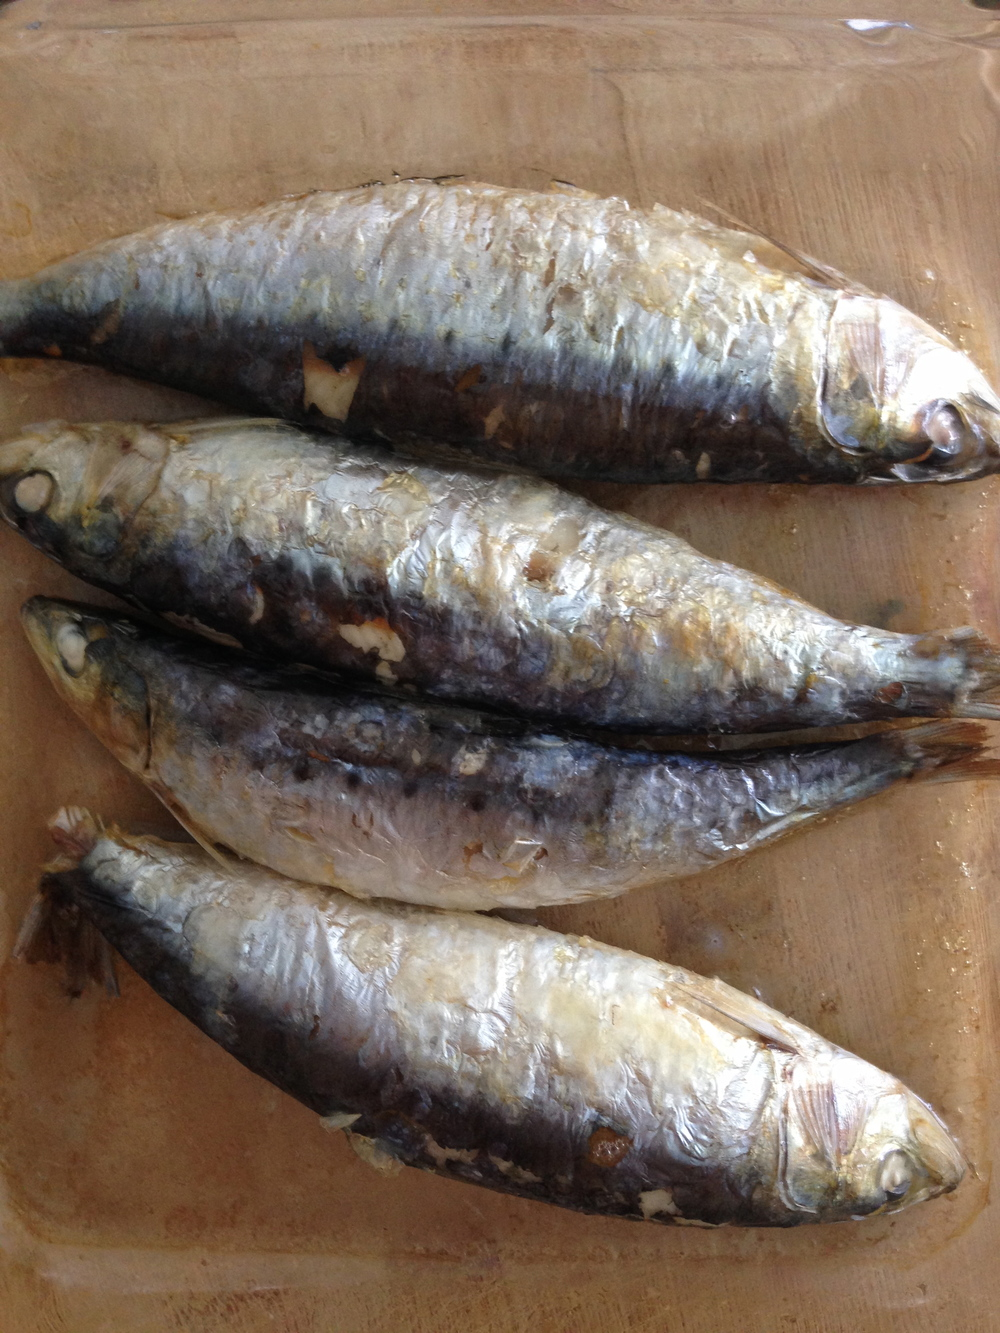 We both love sardines and we buy them fresh whenever we can.  Throw them in the oven for a quick roast and you won't need to take any fish oil tablets -- the sardines will be oozing with omega-3's.